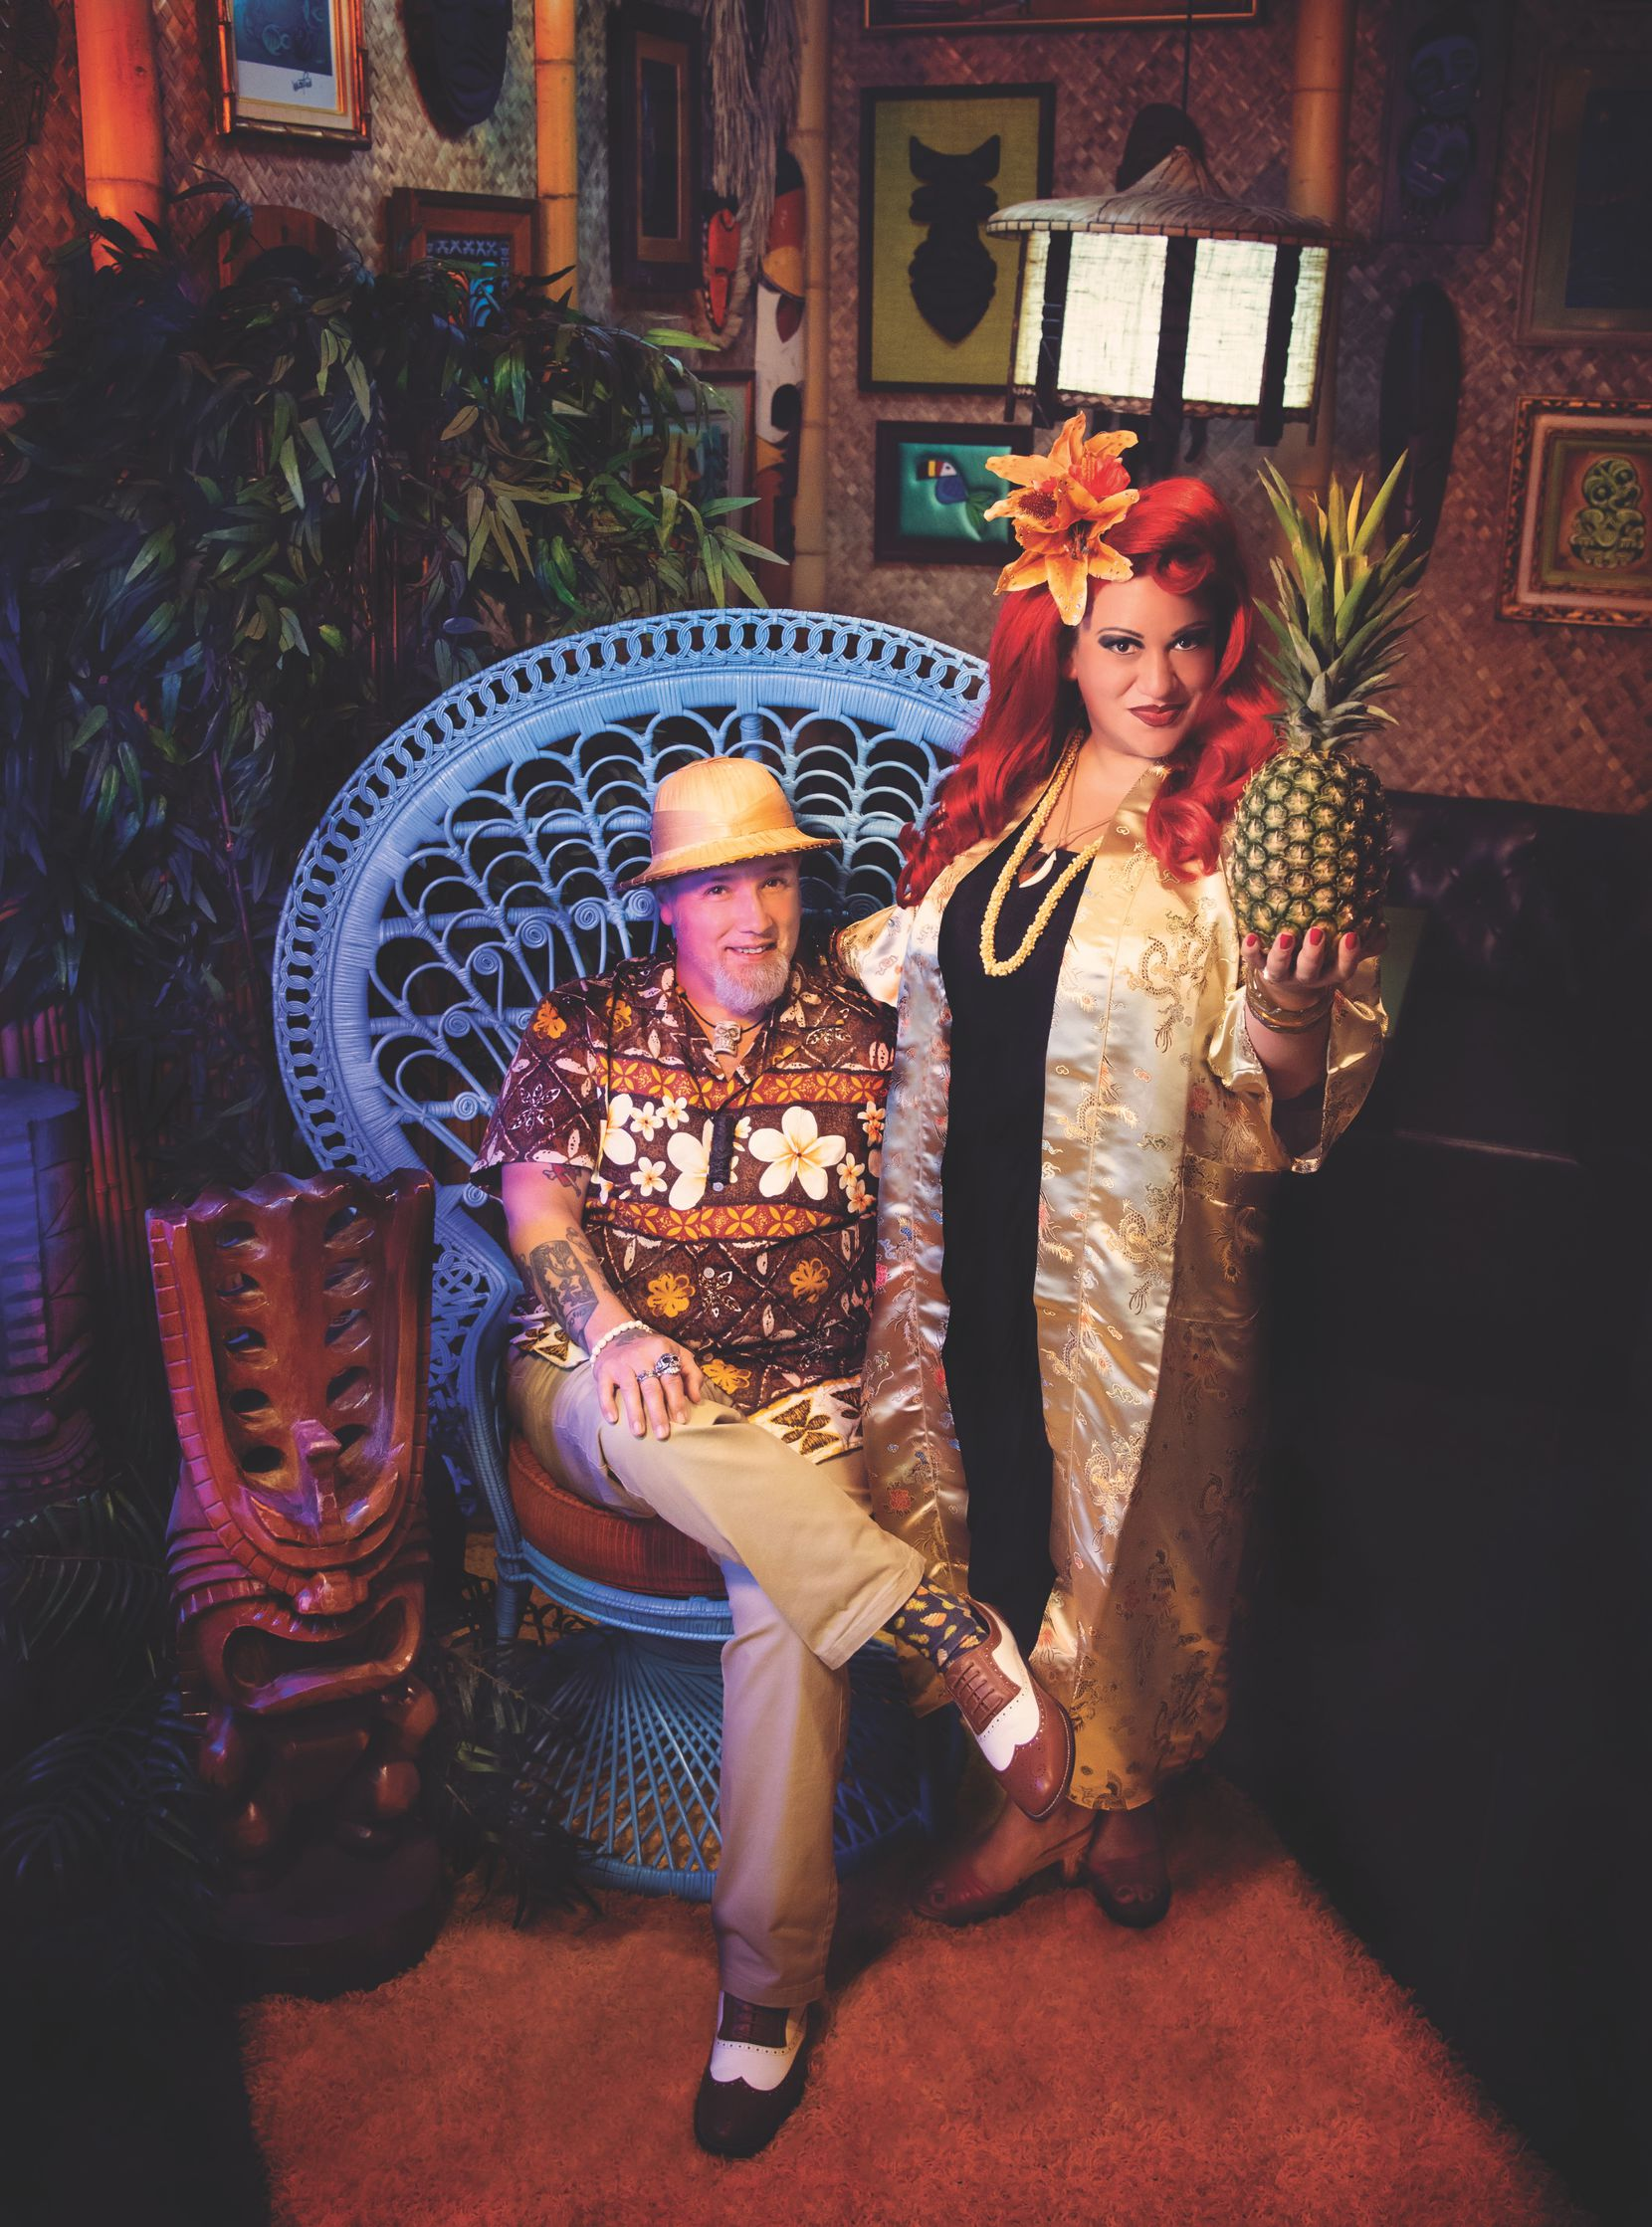 Swizzle is a new tiki restaurant and bar on Greenville Avenue.